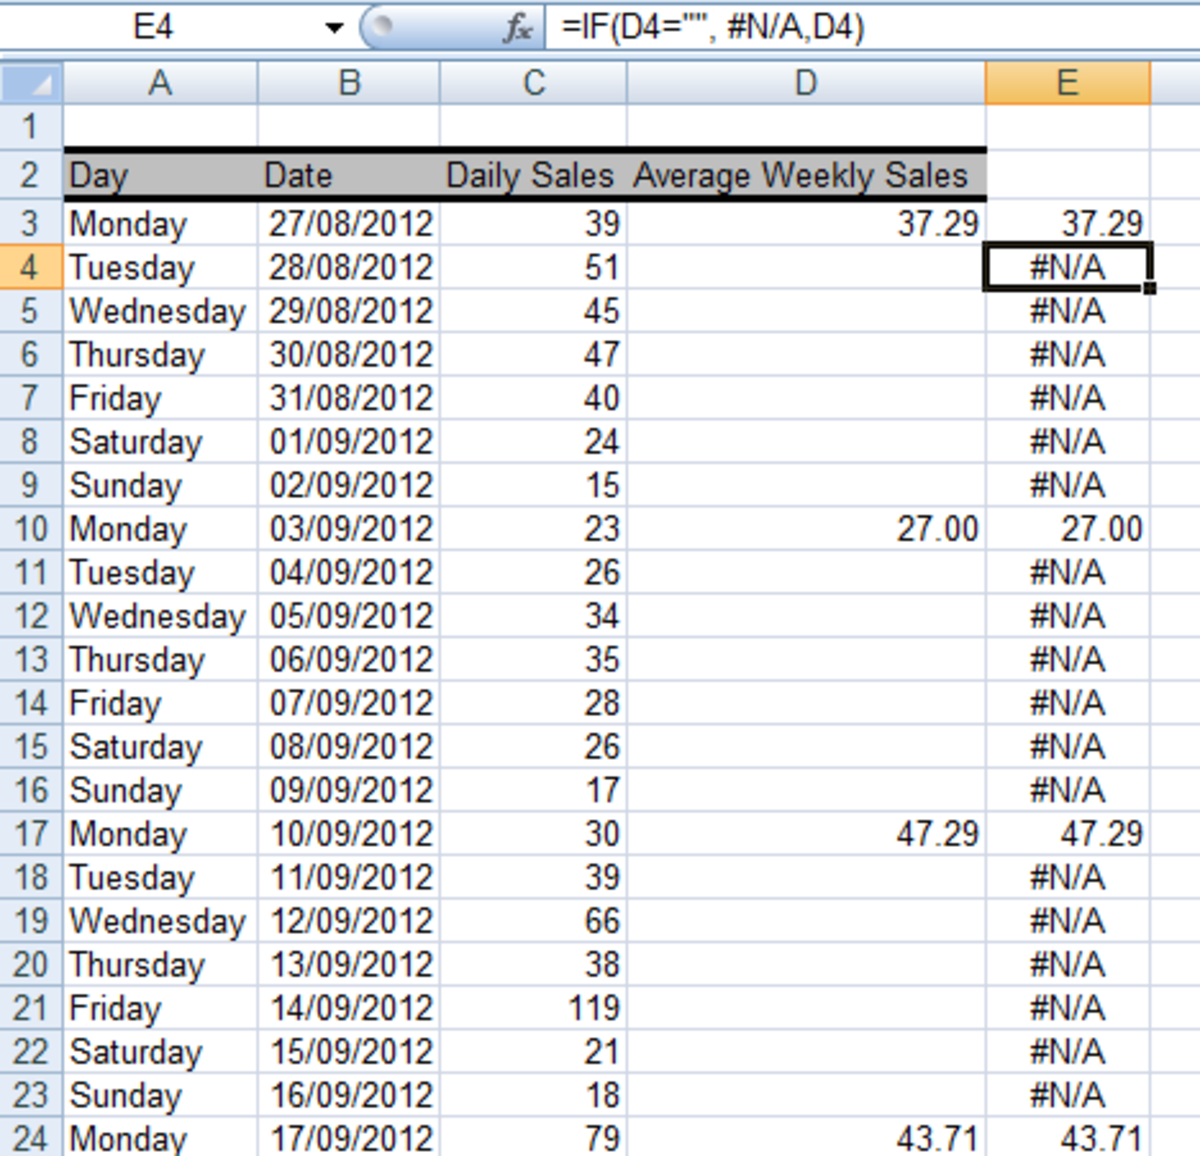 Ediblewildsus  Splendid How To Get Excel  And  To Ignore Empty Cells In A Chart Or  With Outstanding Using The If Function In A Formula To Convert Empty Cells To Na With Amusing Excel Formula Fill Down Also Password Excel  In Addition Jobs For Excel Experts And Bode Plot In Excel As Well As Salesforce Excel Add In Additionally Reference Sheet In Excel From Turbofuturecom With Ediblewildsus  Outstanding How To Get Excel  And  To Ignore Empty Cells In A Chart Or  With Amusing Using The If Function In A Formula To Convert Empty Cells To Na And Splendid Excel Formula Fill Down Also Password Excel  In Addition Jobs For Excel Experts From Turbofuturecom